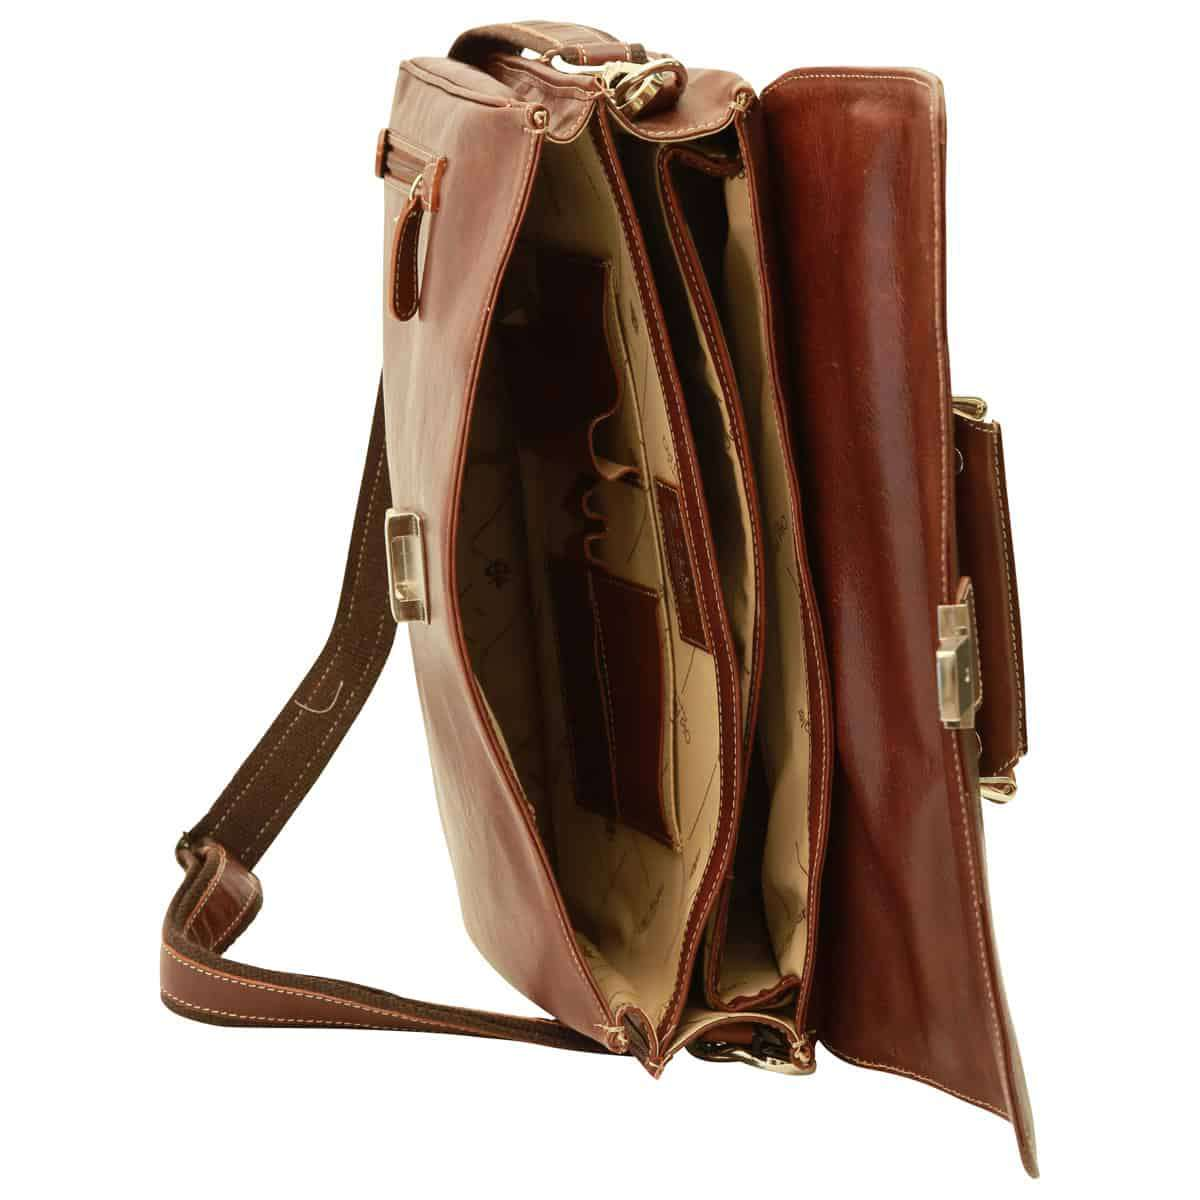 Oiled Calfskin Leather Briefcase with shoulder strap - Chestnut | 075861CA E | Old Angler Firenze